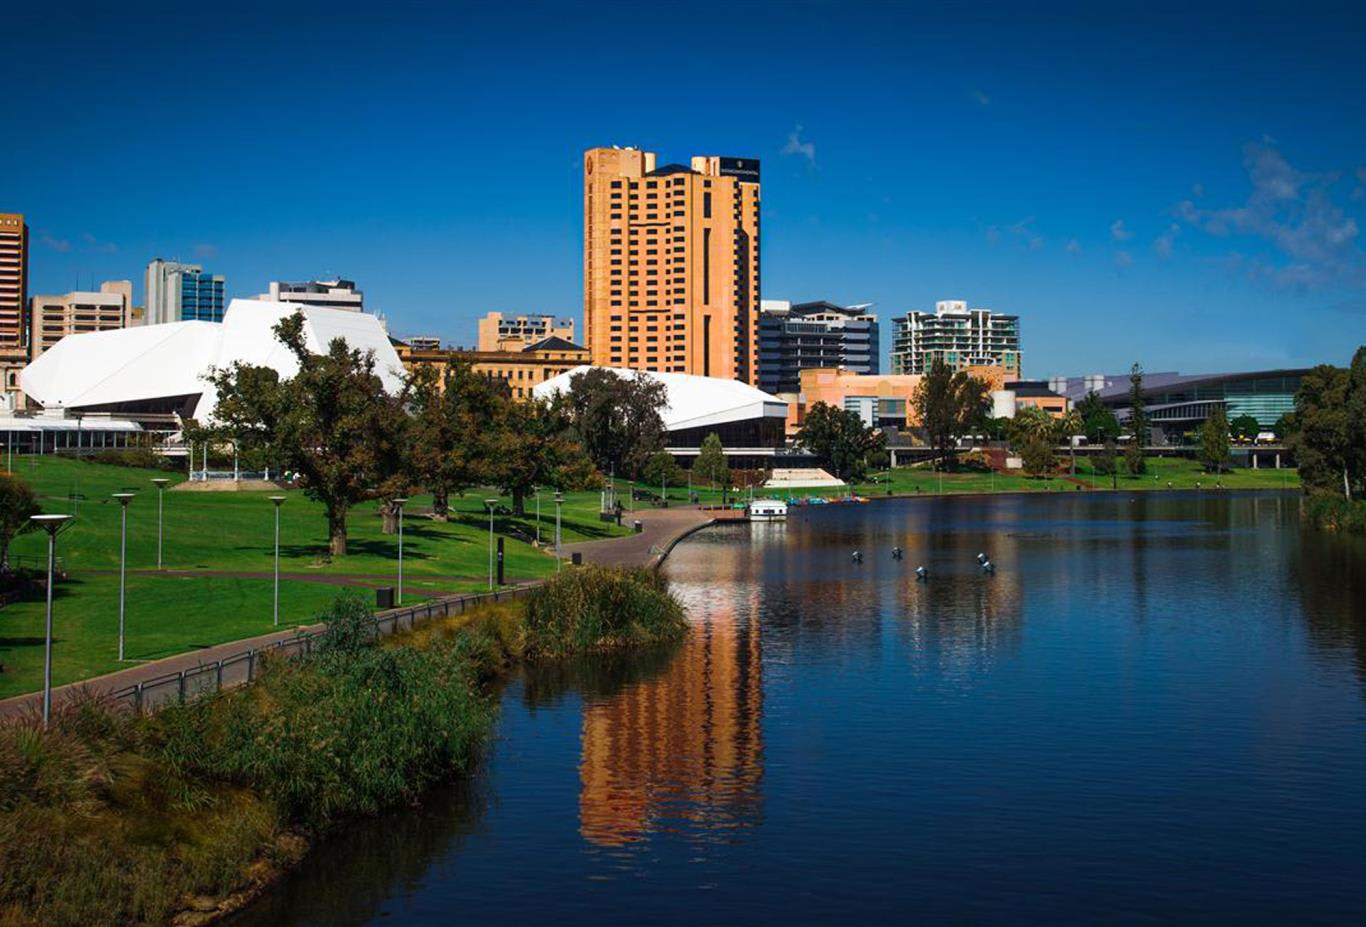 InterContinental located on the River Torrens